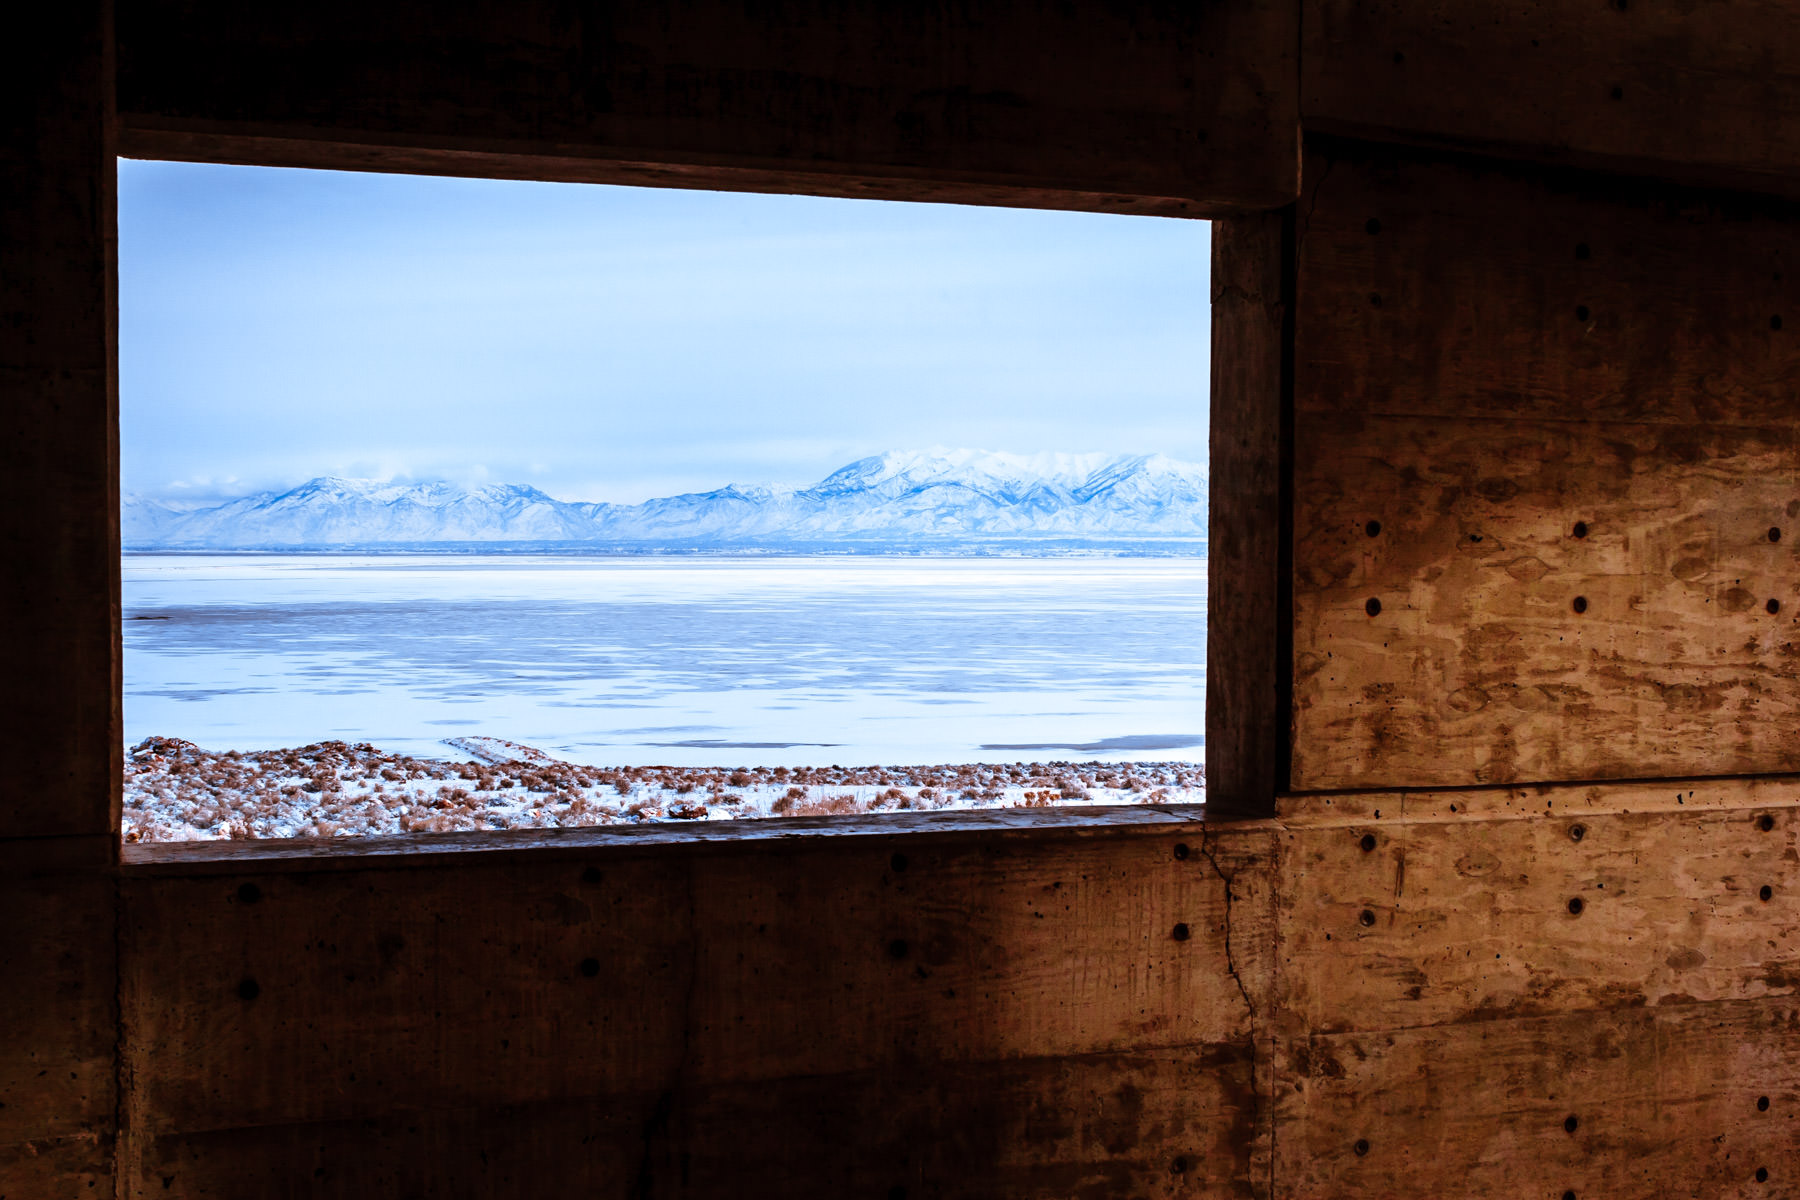 The Wasatch Front as seen through a window at the Antelope Island State Park Visitors Center, Utah.